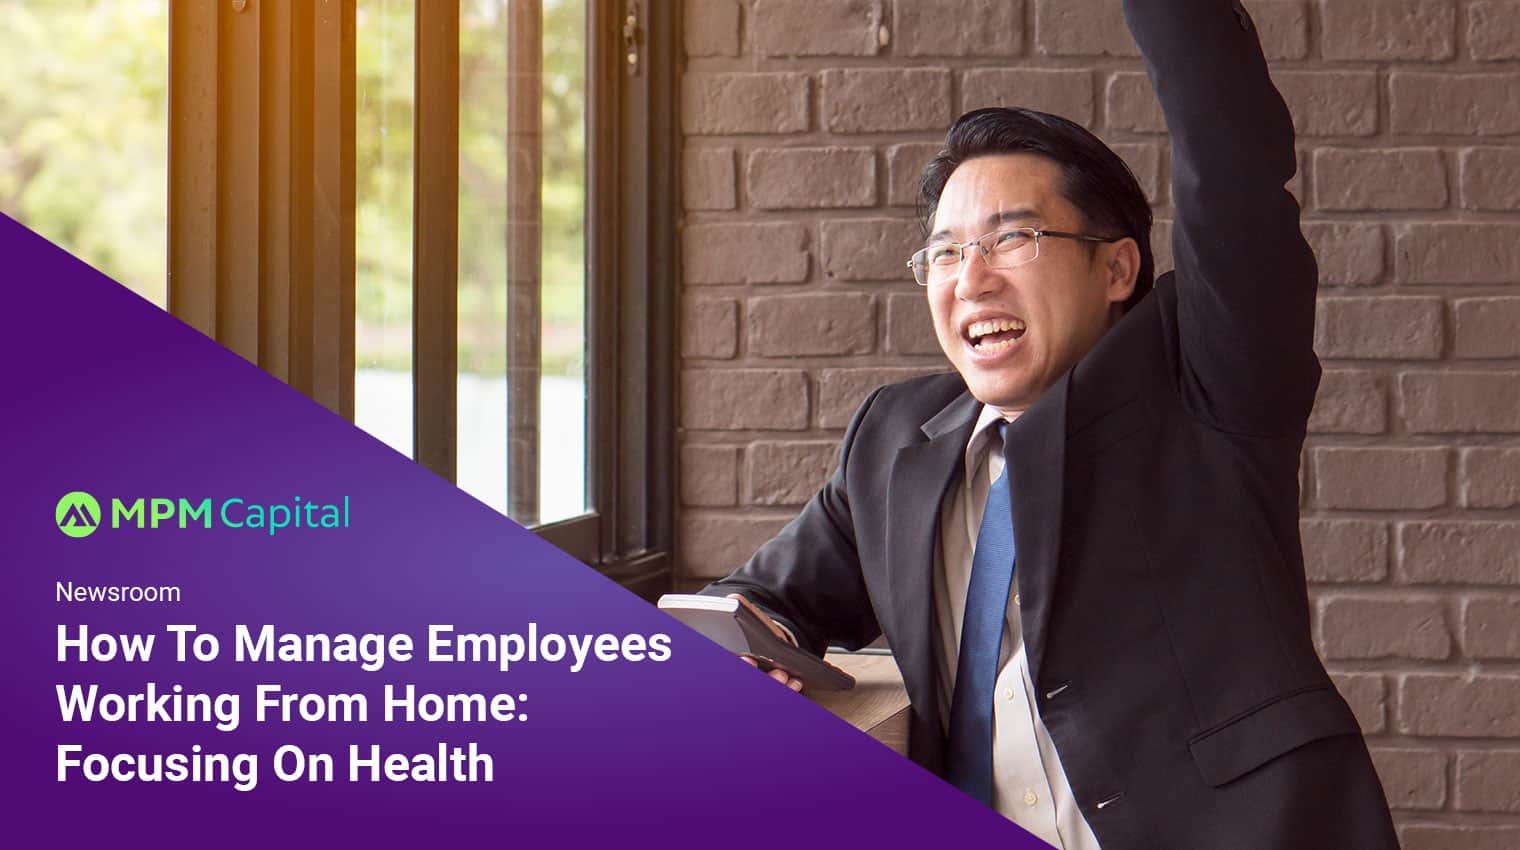 Newsroom-How-To-Manage-Employees-Working-From-Home--Focusing-On-Health-MPM-Capital